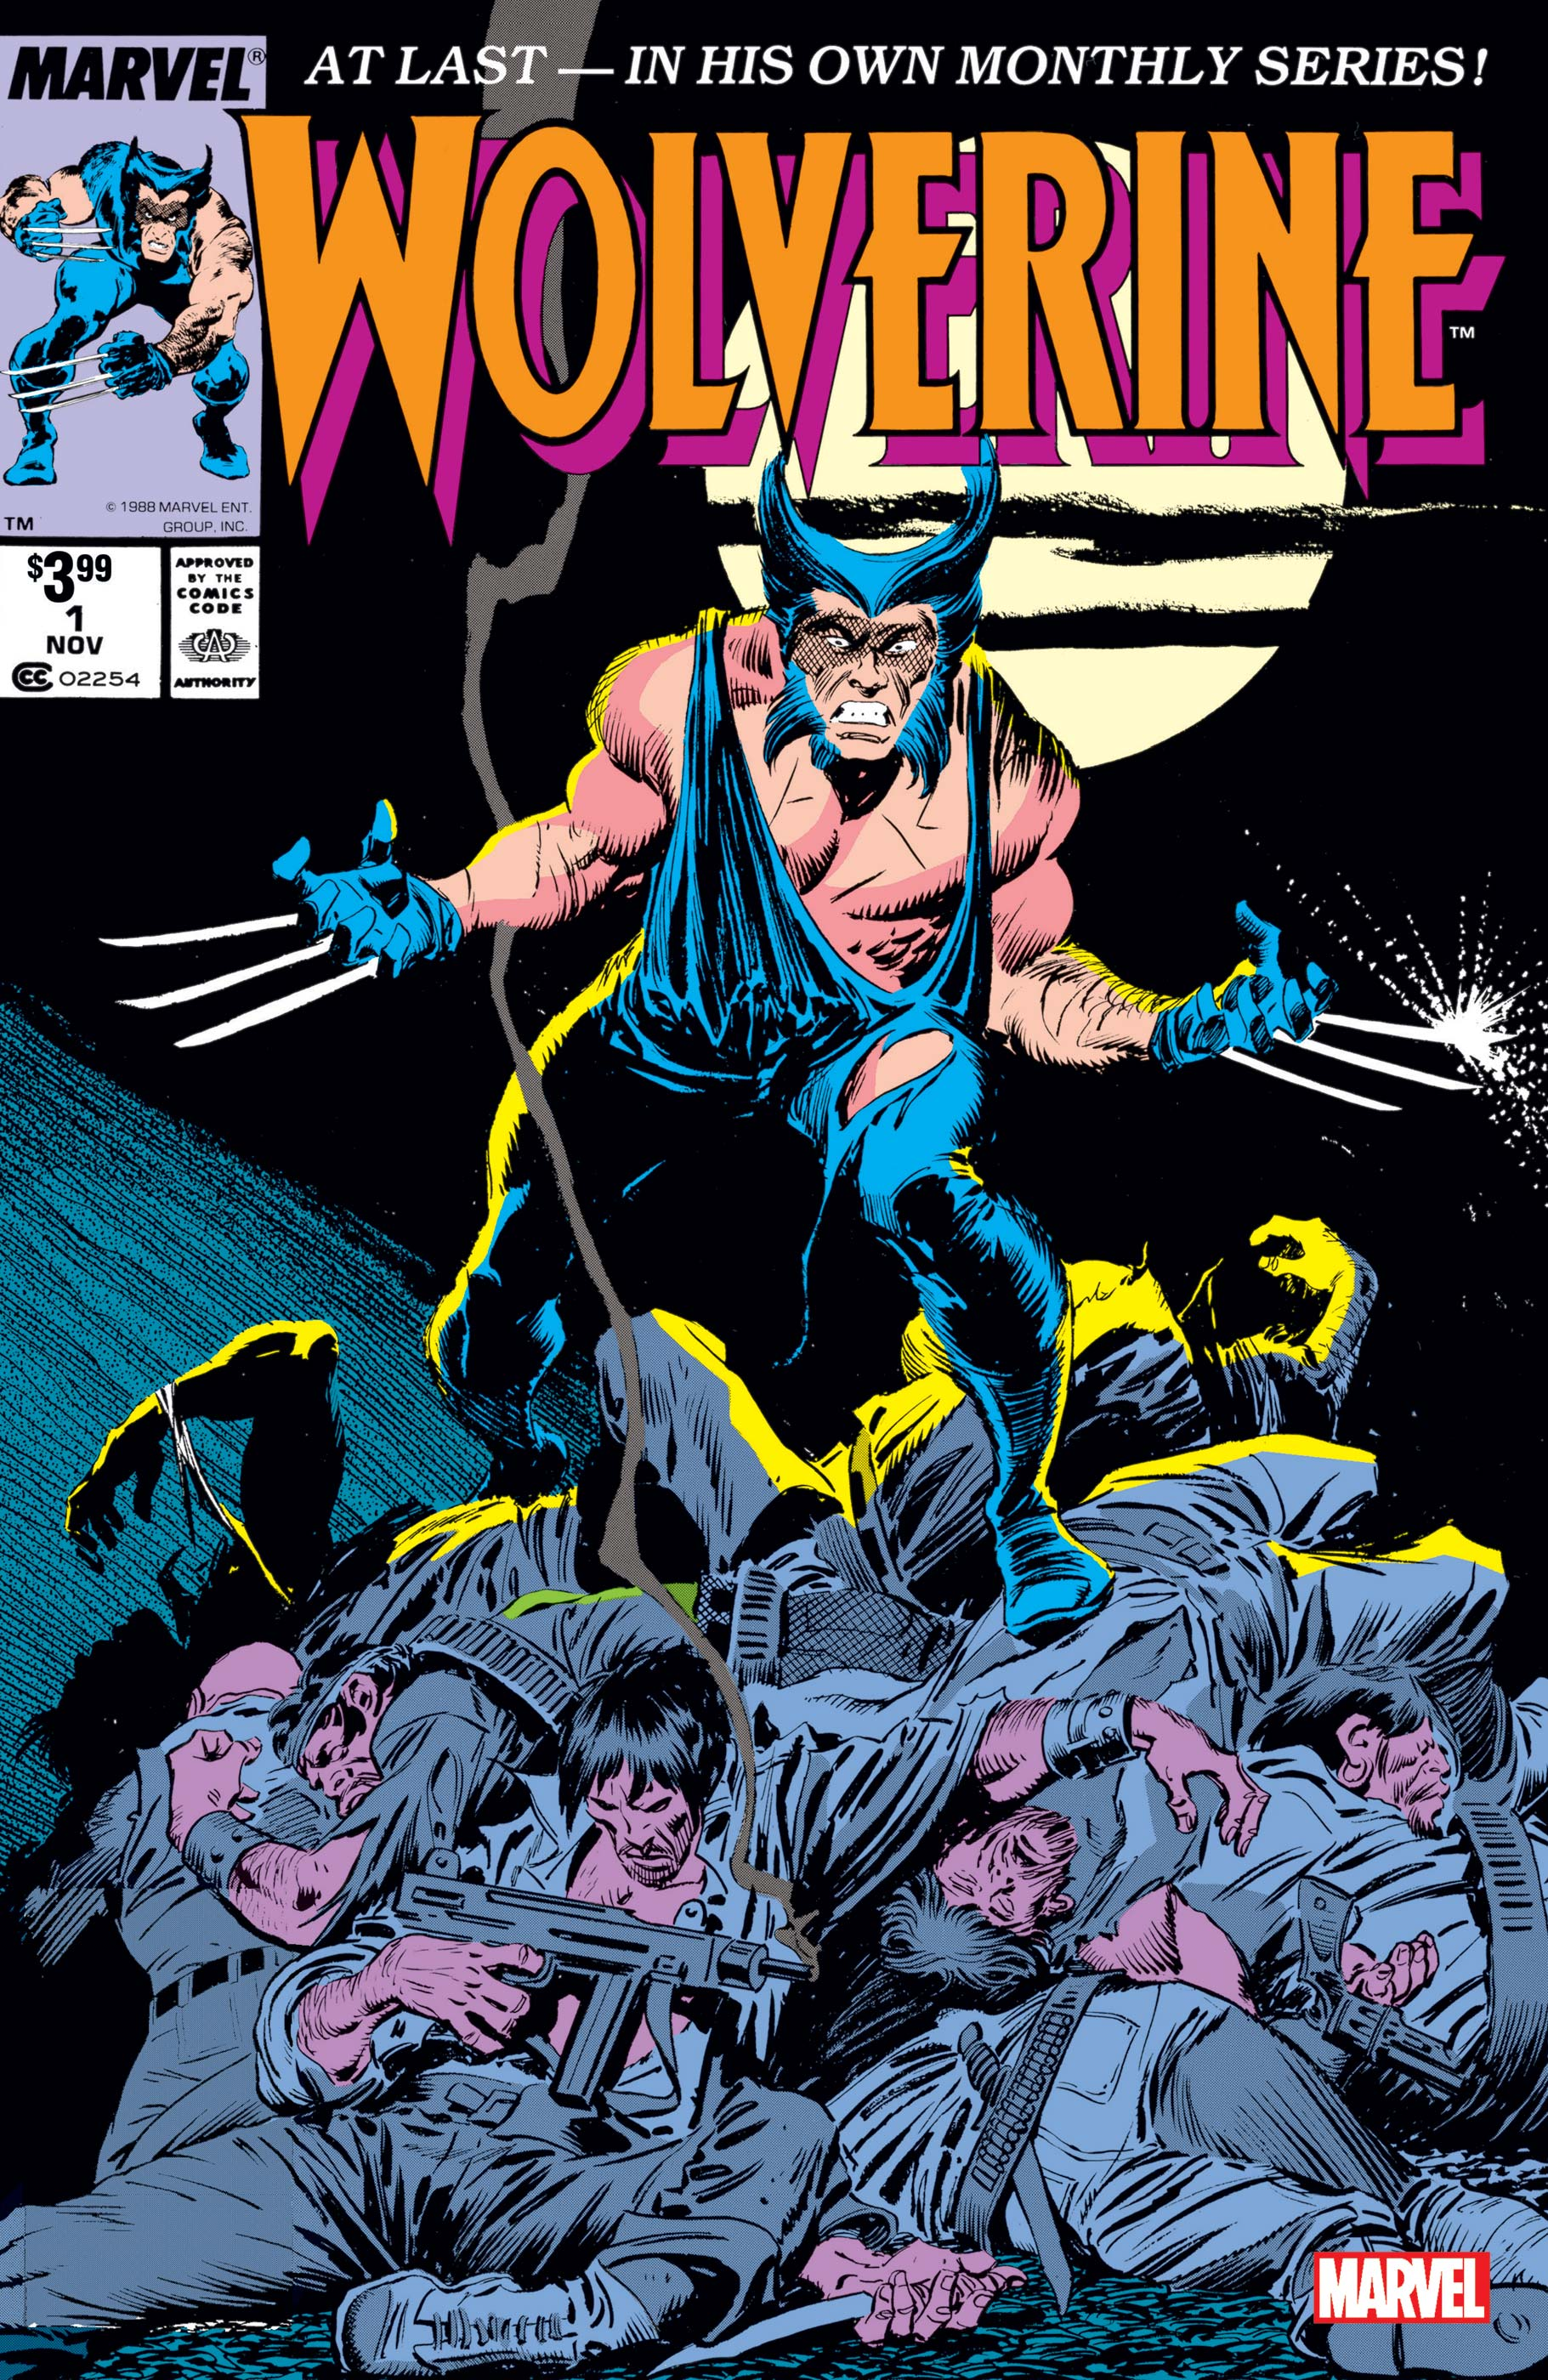 Wolverine by Claremont & Buscema Facsimile Edition (2020) #1